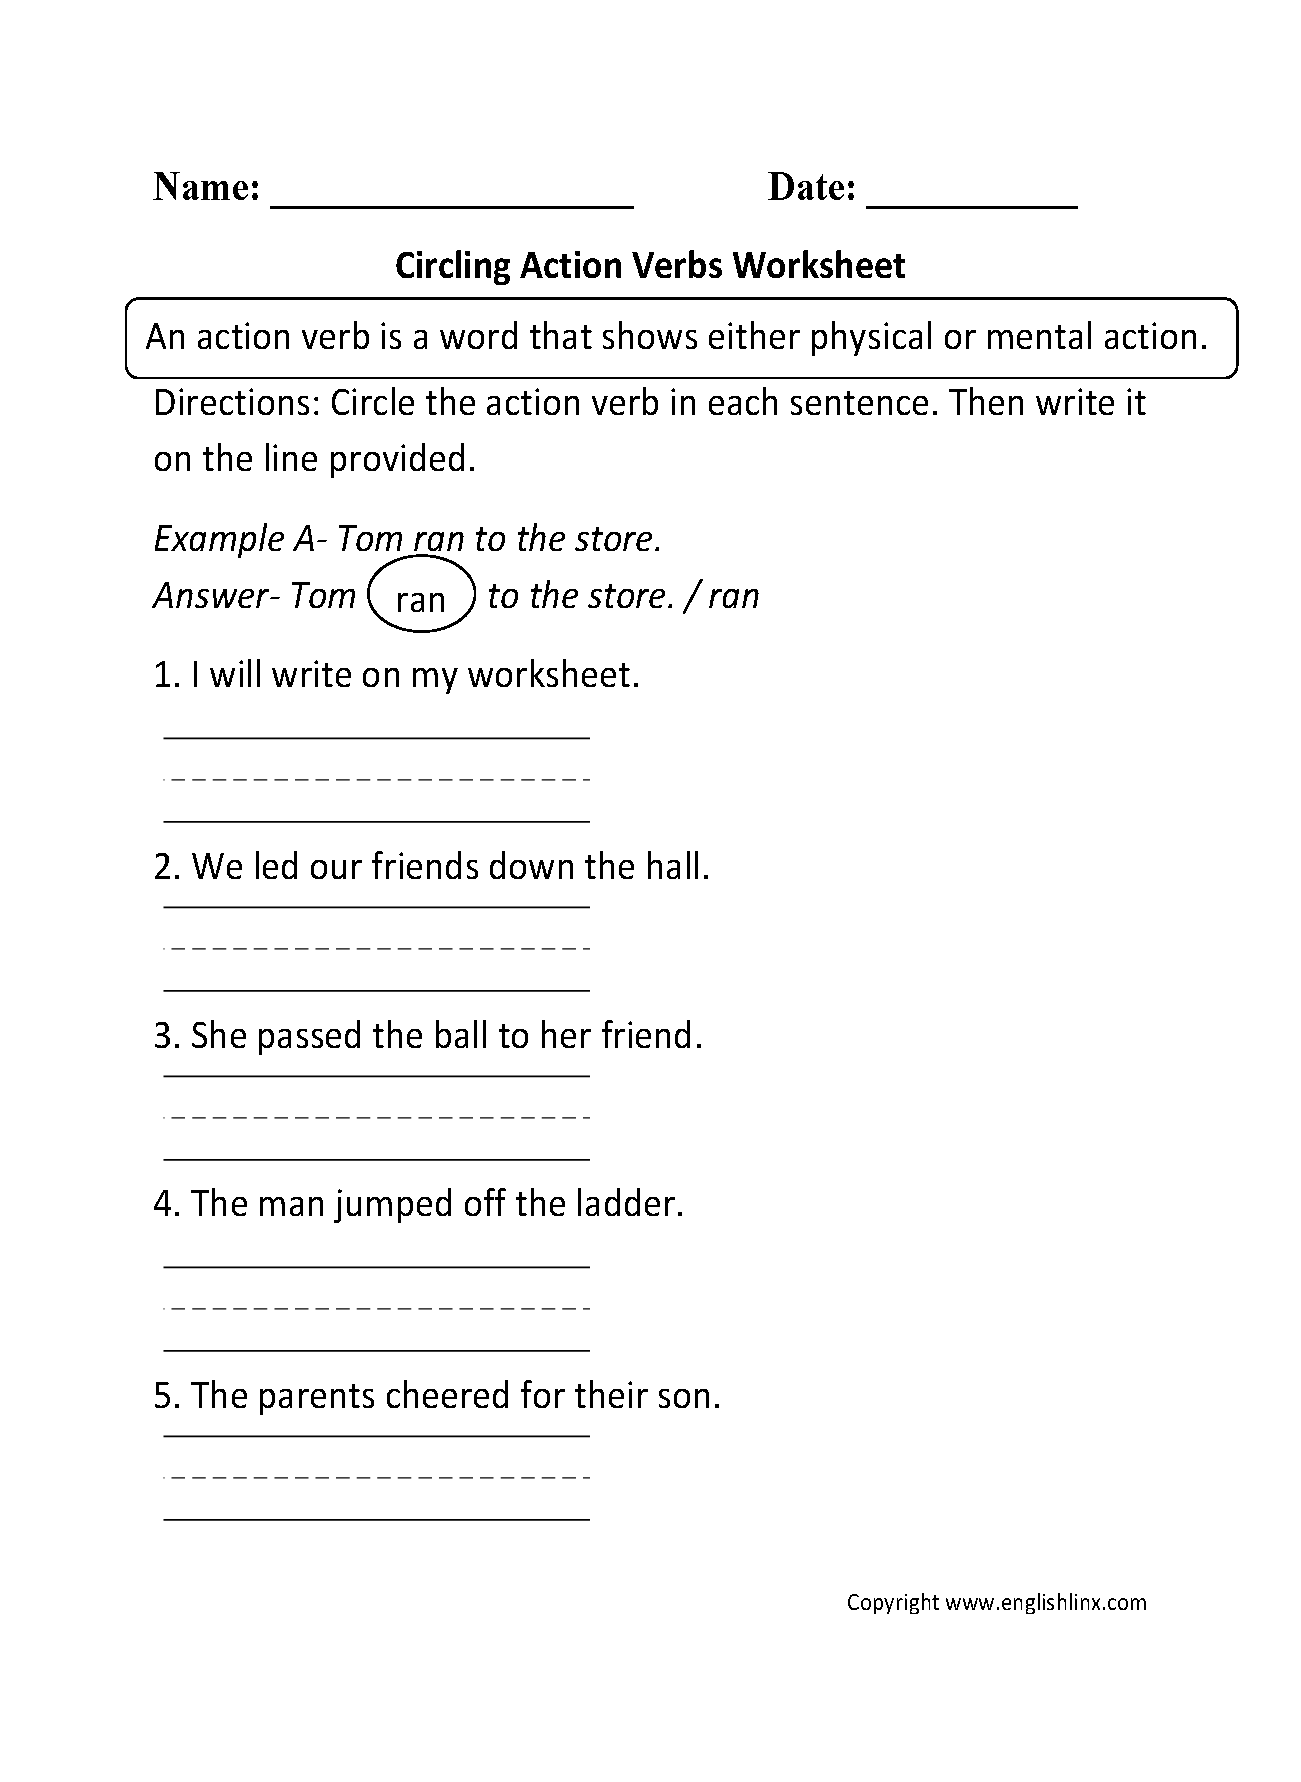 grades k 5 action verbs worksheets - Action Berbs